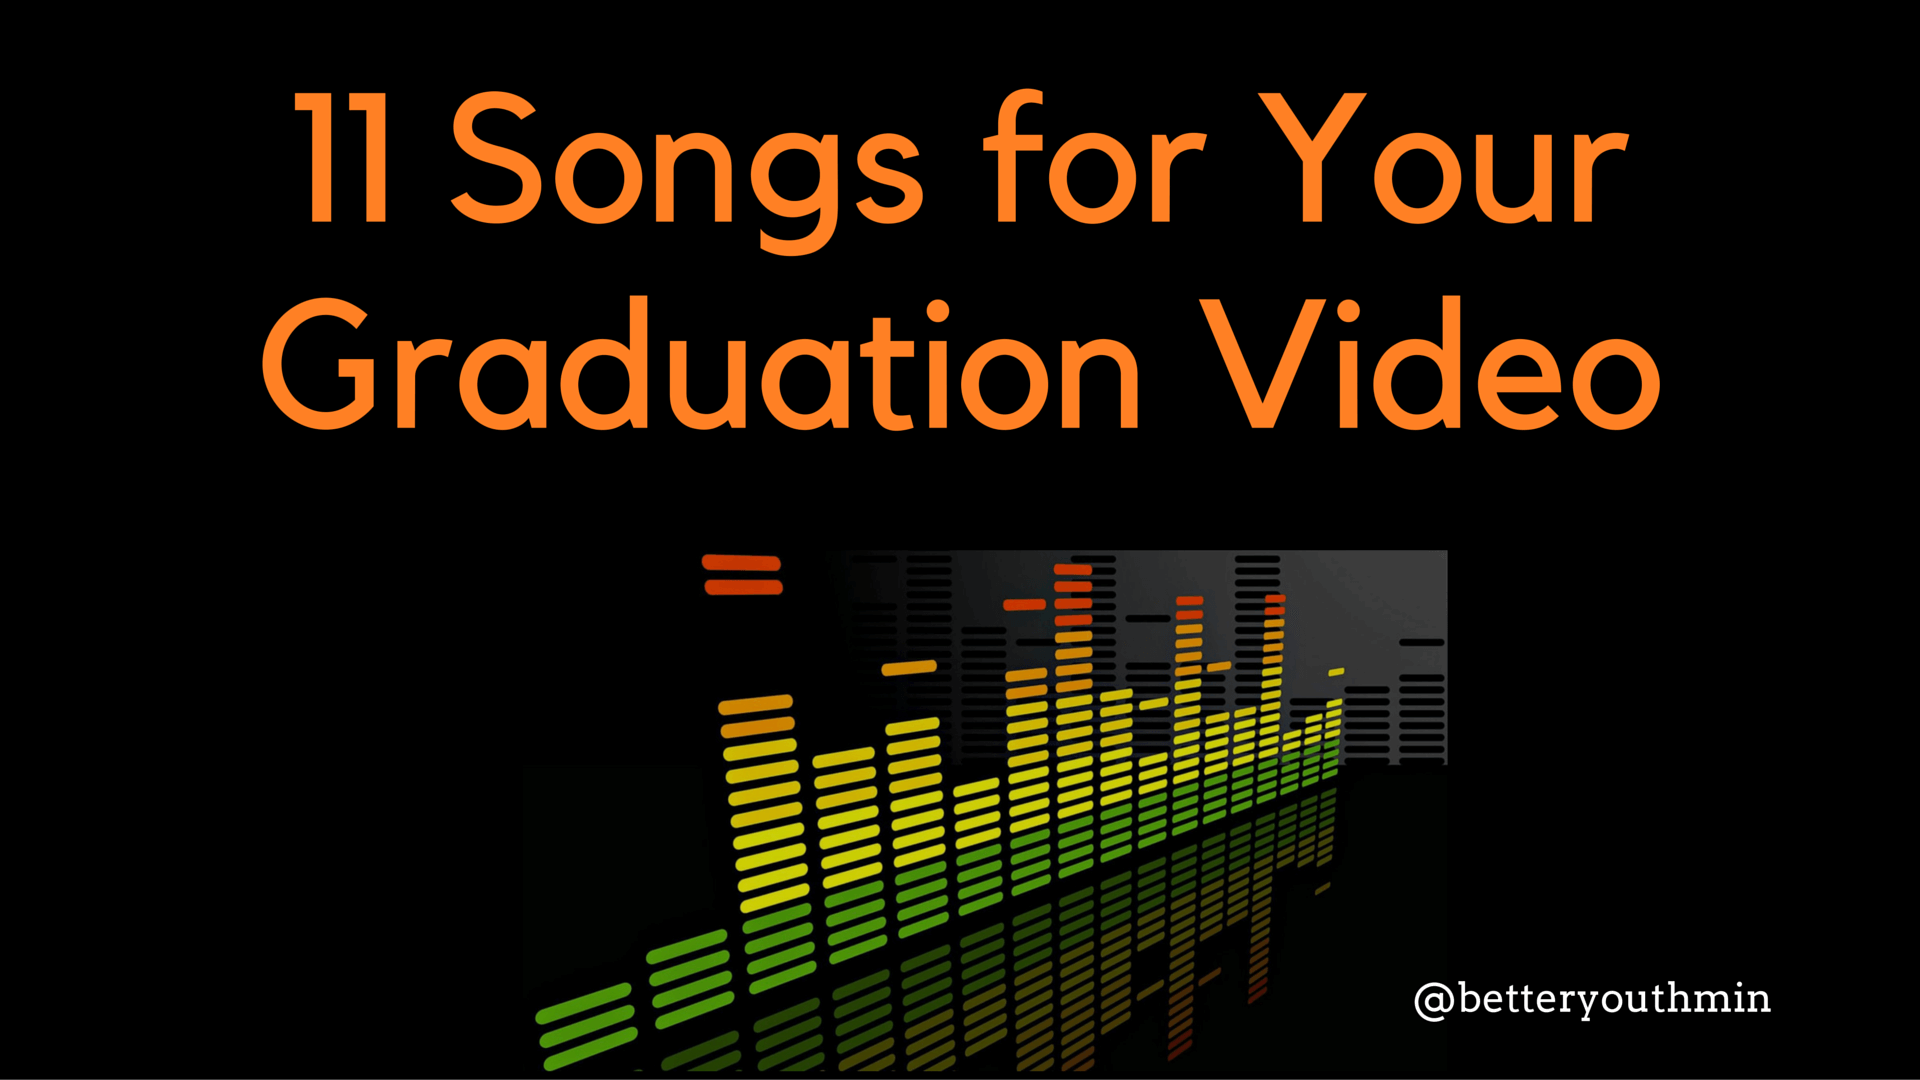 11 Songs for Your Graduation Video